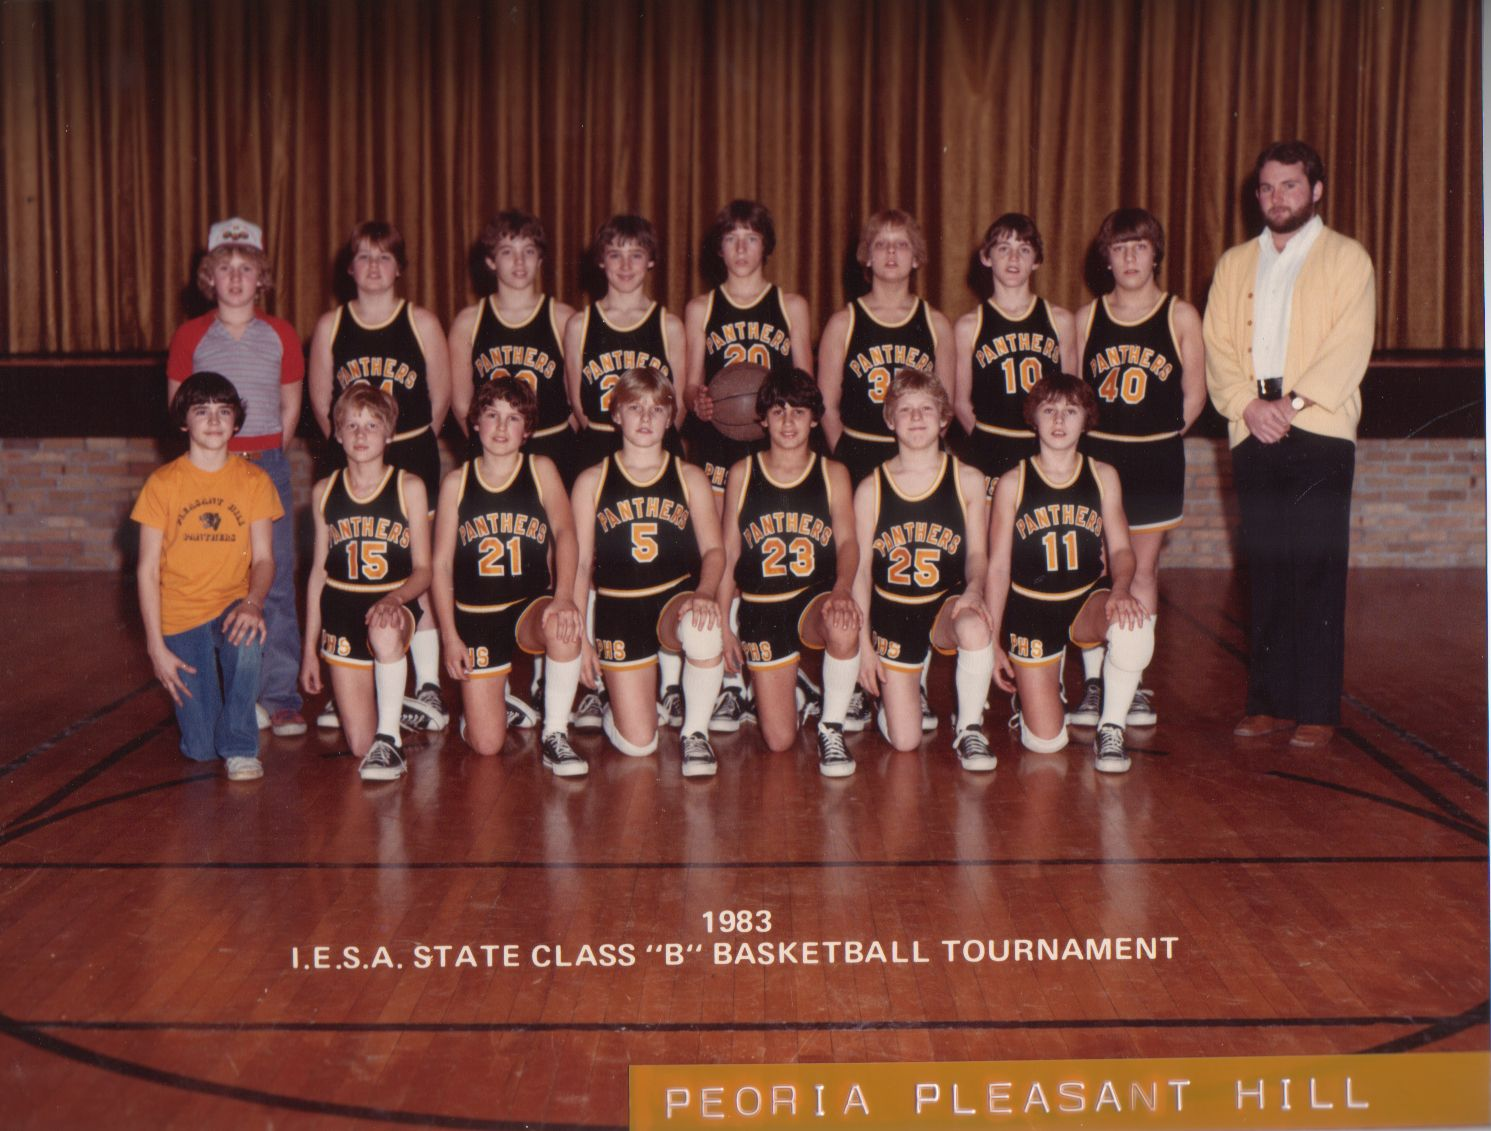 10 Jim Thome With His 1983 Iesa State Basketball Final Team Went On To Find Success In Major League Baseball Basketball Finals Jim Thome Basketball Tournament